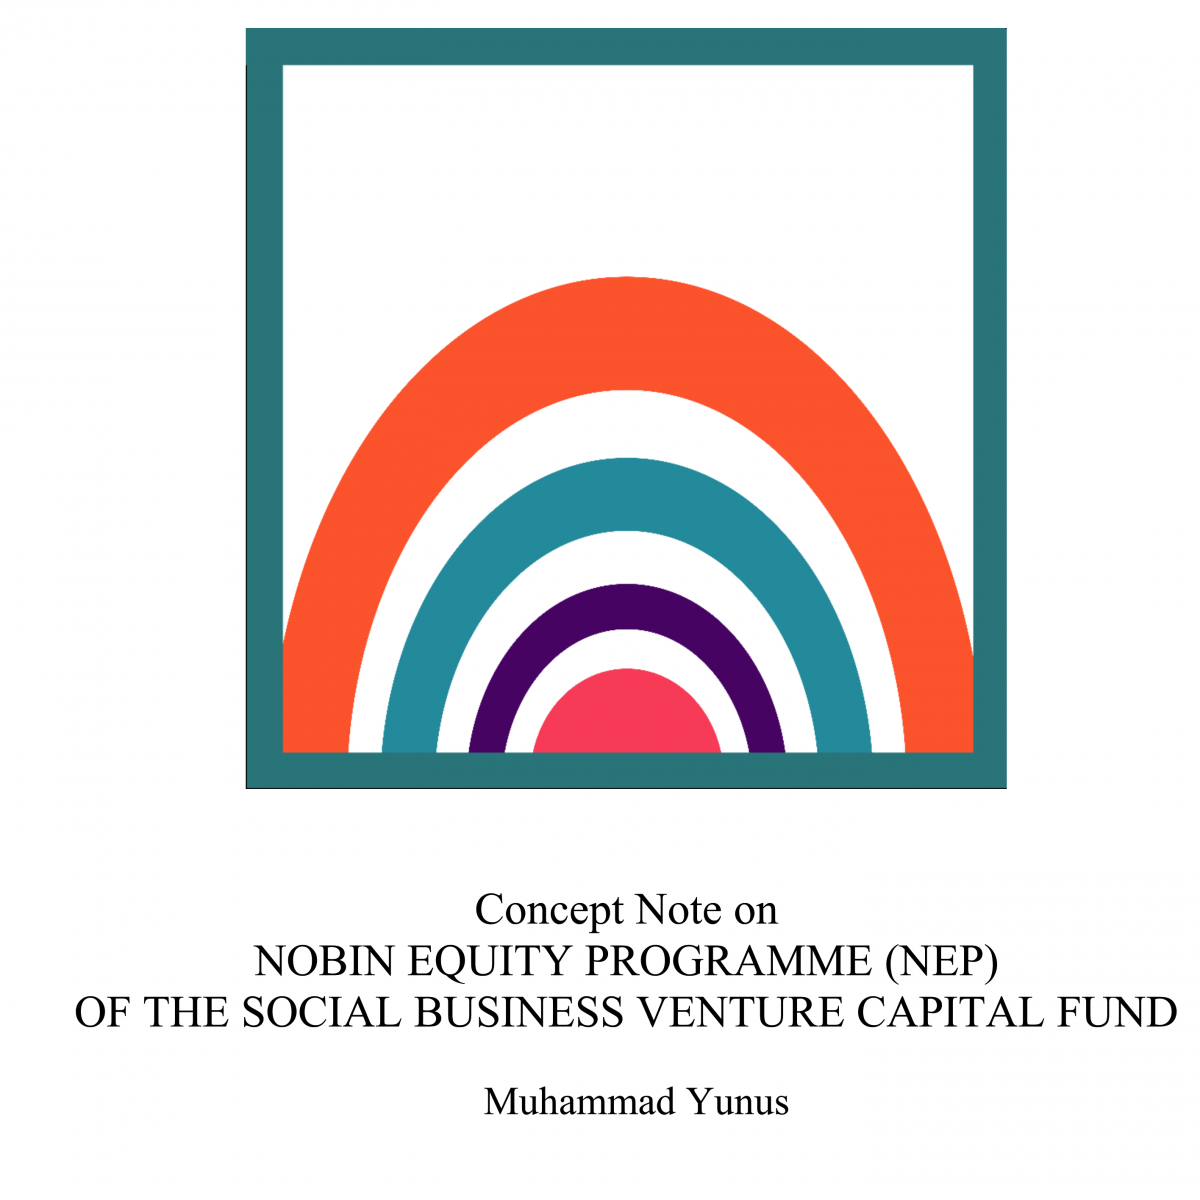 Concept Note on  NOBIN EQUITY PROGRAMME (NEP)  OF THE SOCIAL BUSINESS VENTURE CAPITAL FUND